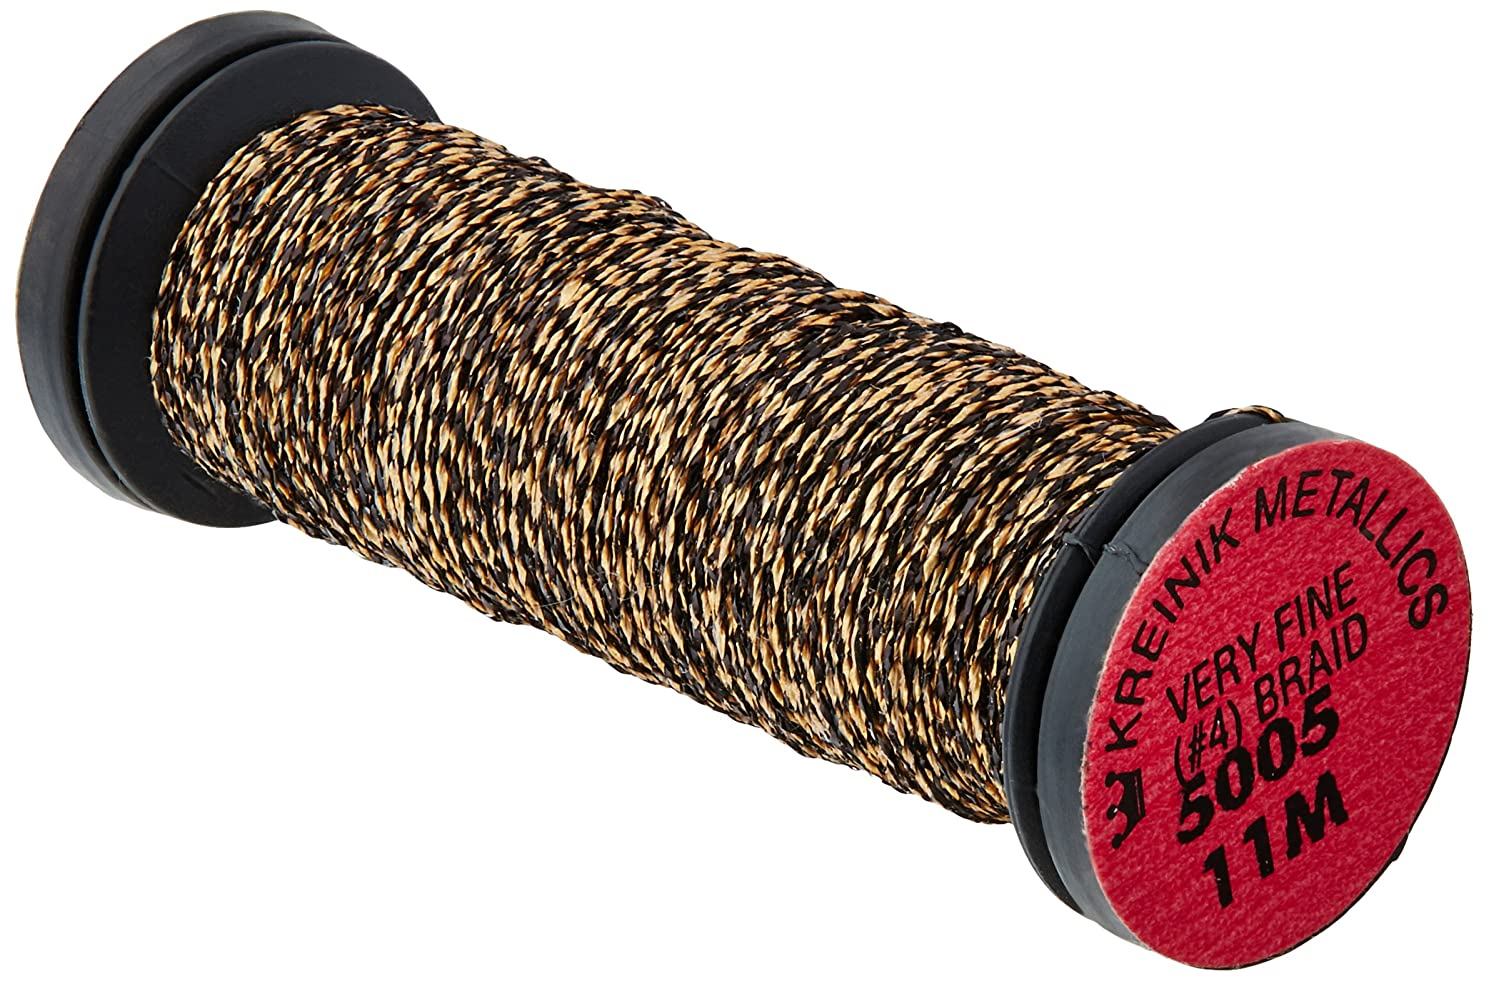 Kreinik No.4 Very Fine Metallic Craft Braid, 12-Yard, Gold Coin